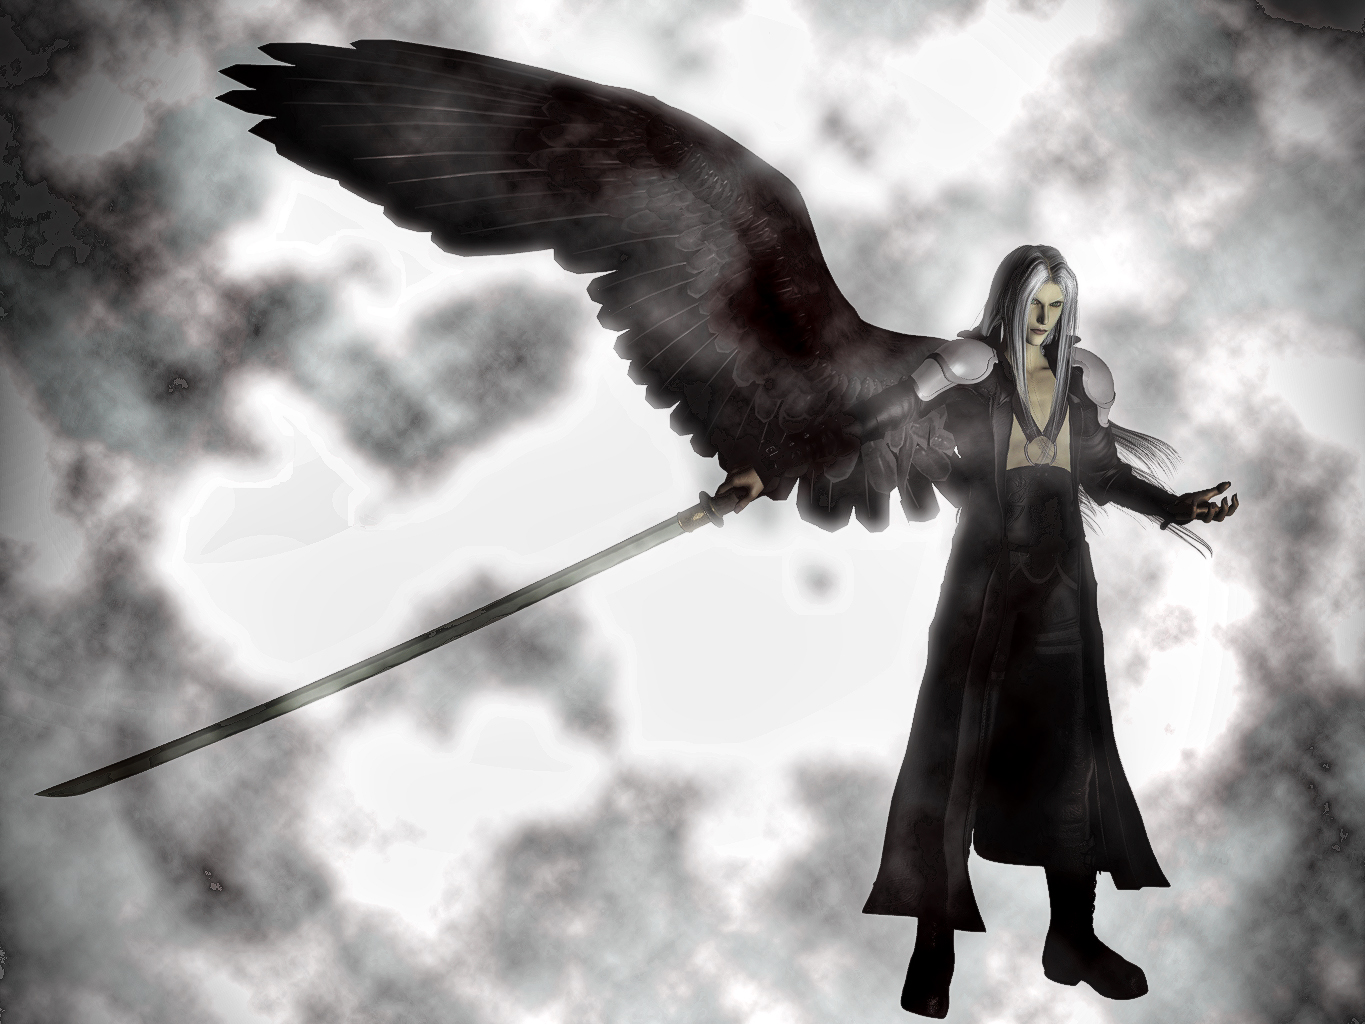 Sephiroth The One-Winged Angel by DarthMael on DeviantArt One Winged Angel Sephiroth